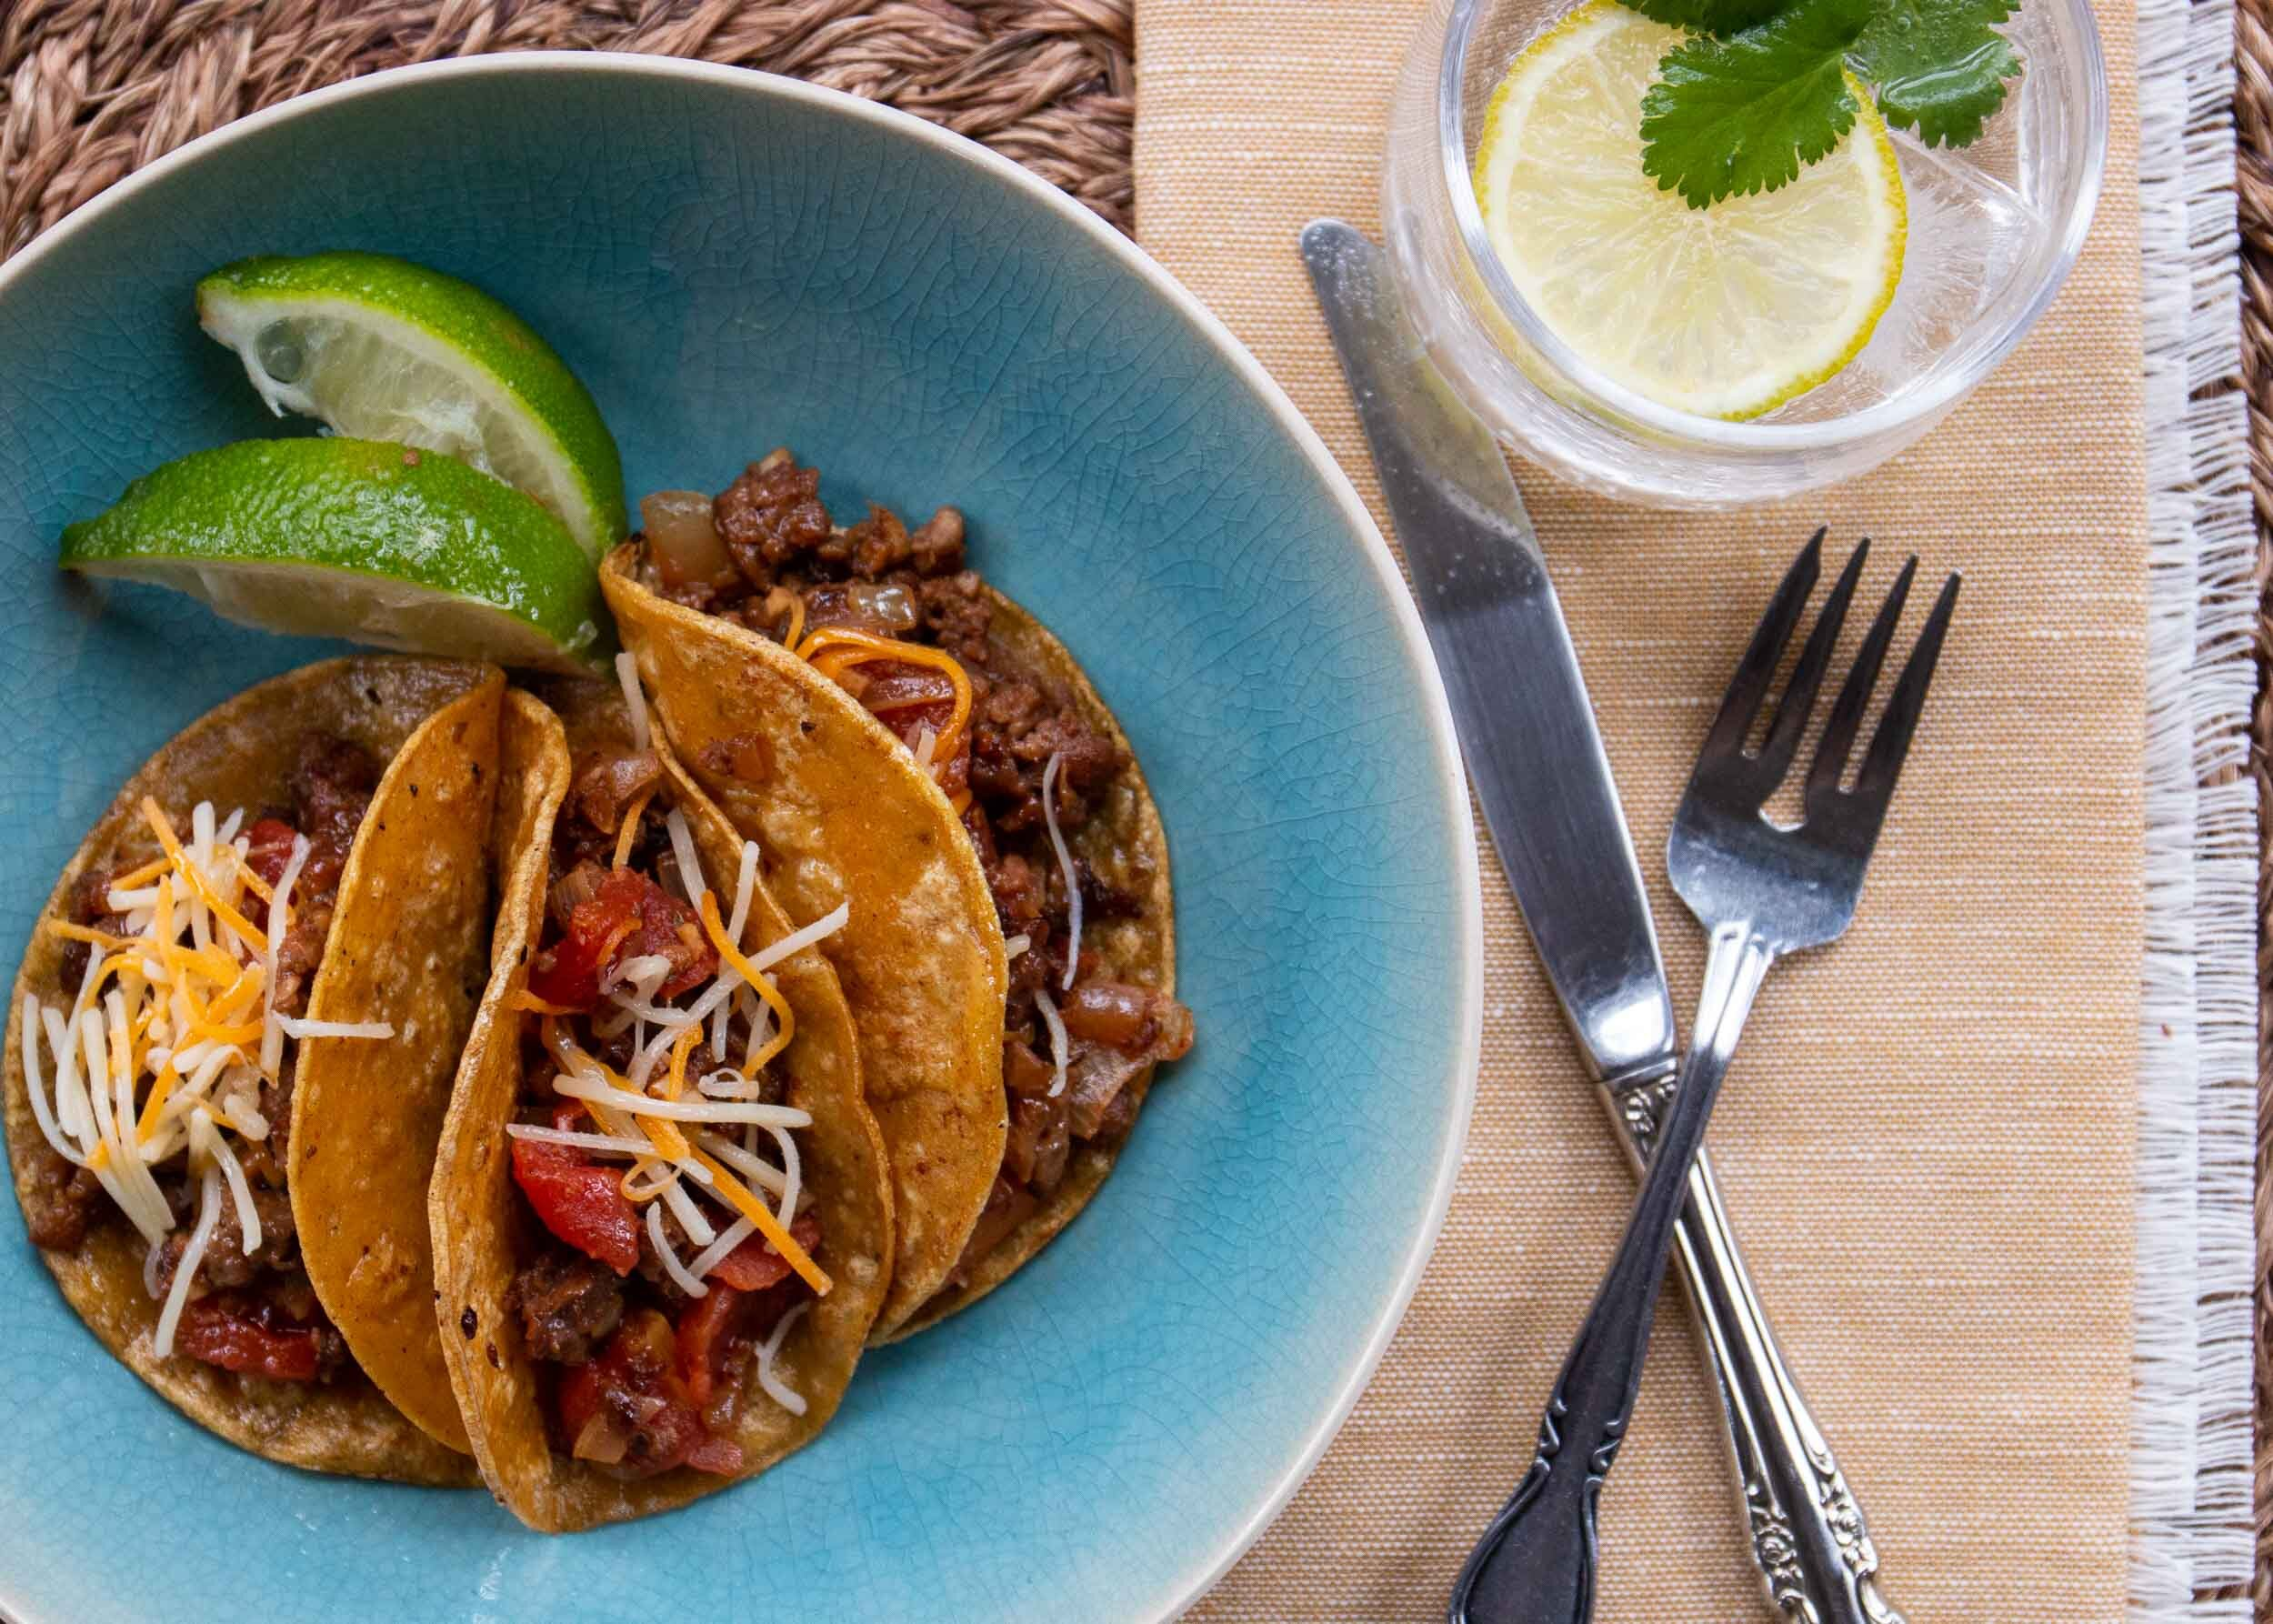 southwestern flavored ground beef or turkey for tacos salad